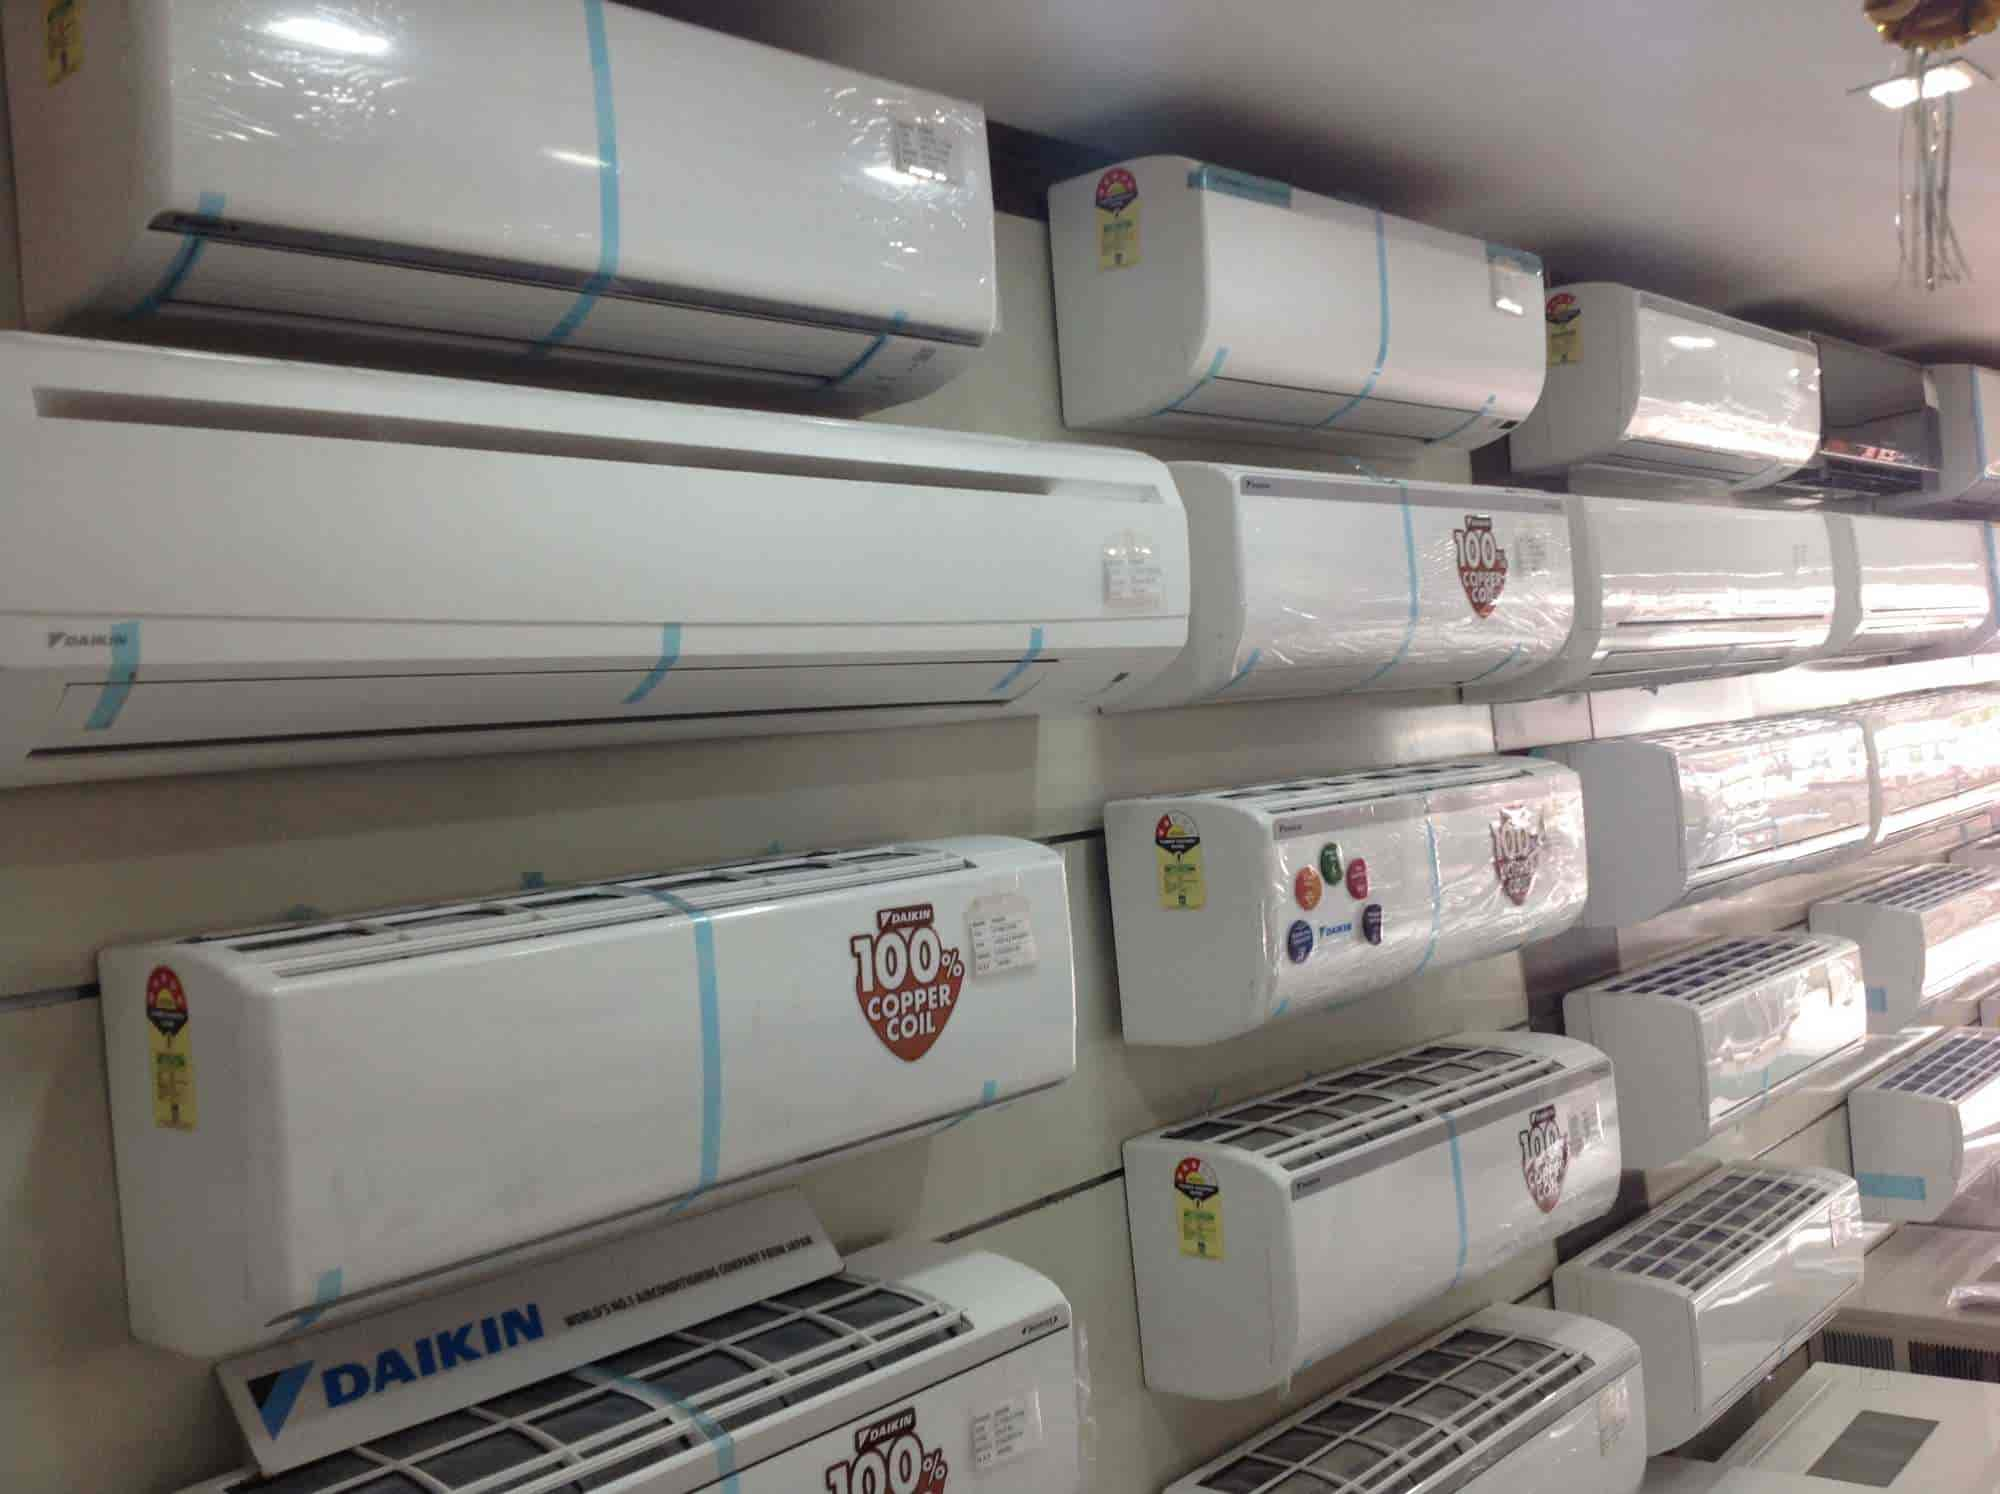 S A Air Conditioning Photos Bopal Ahmedabad Pictures Images Inverter Conditioner Renesas Electronics India Gallery Justdial